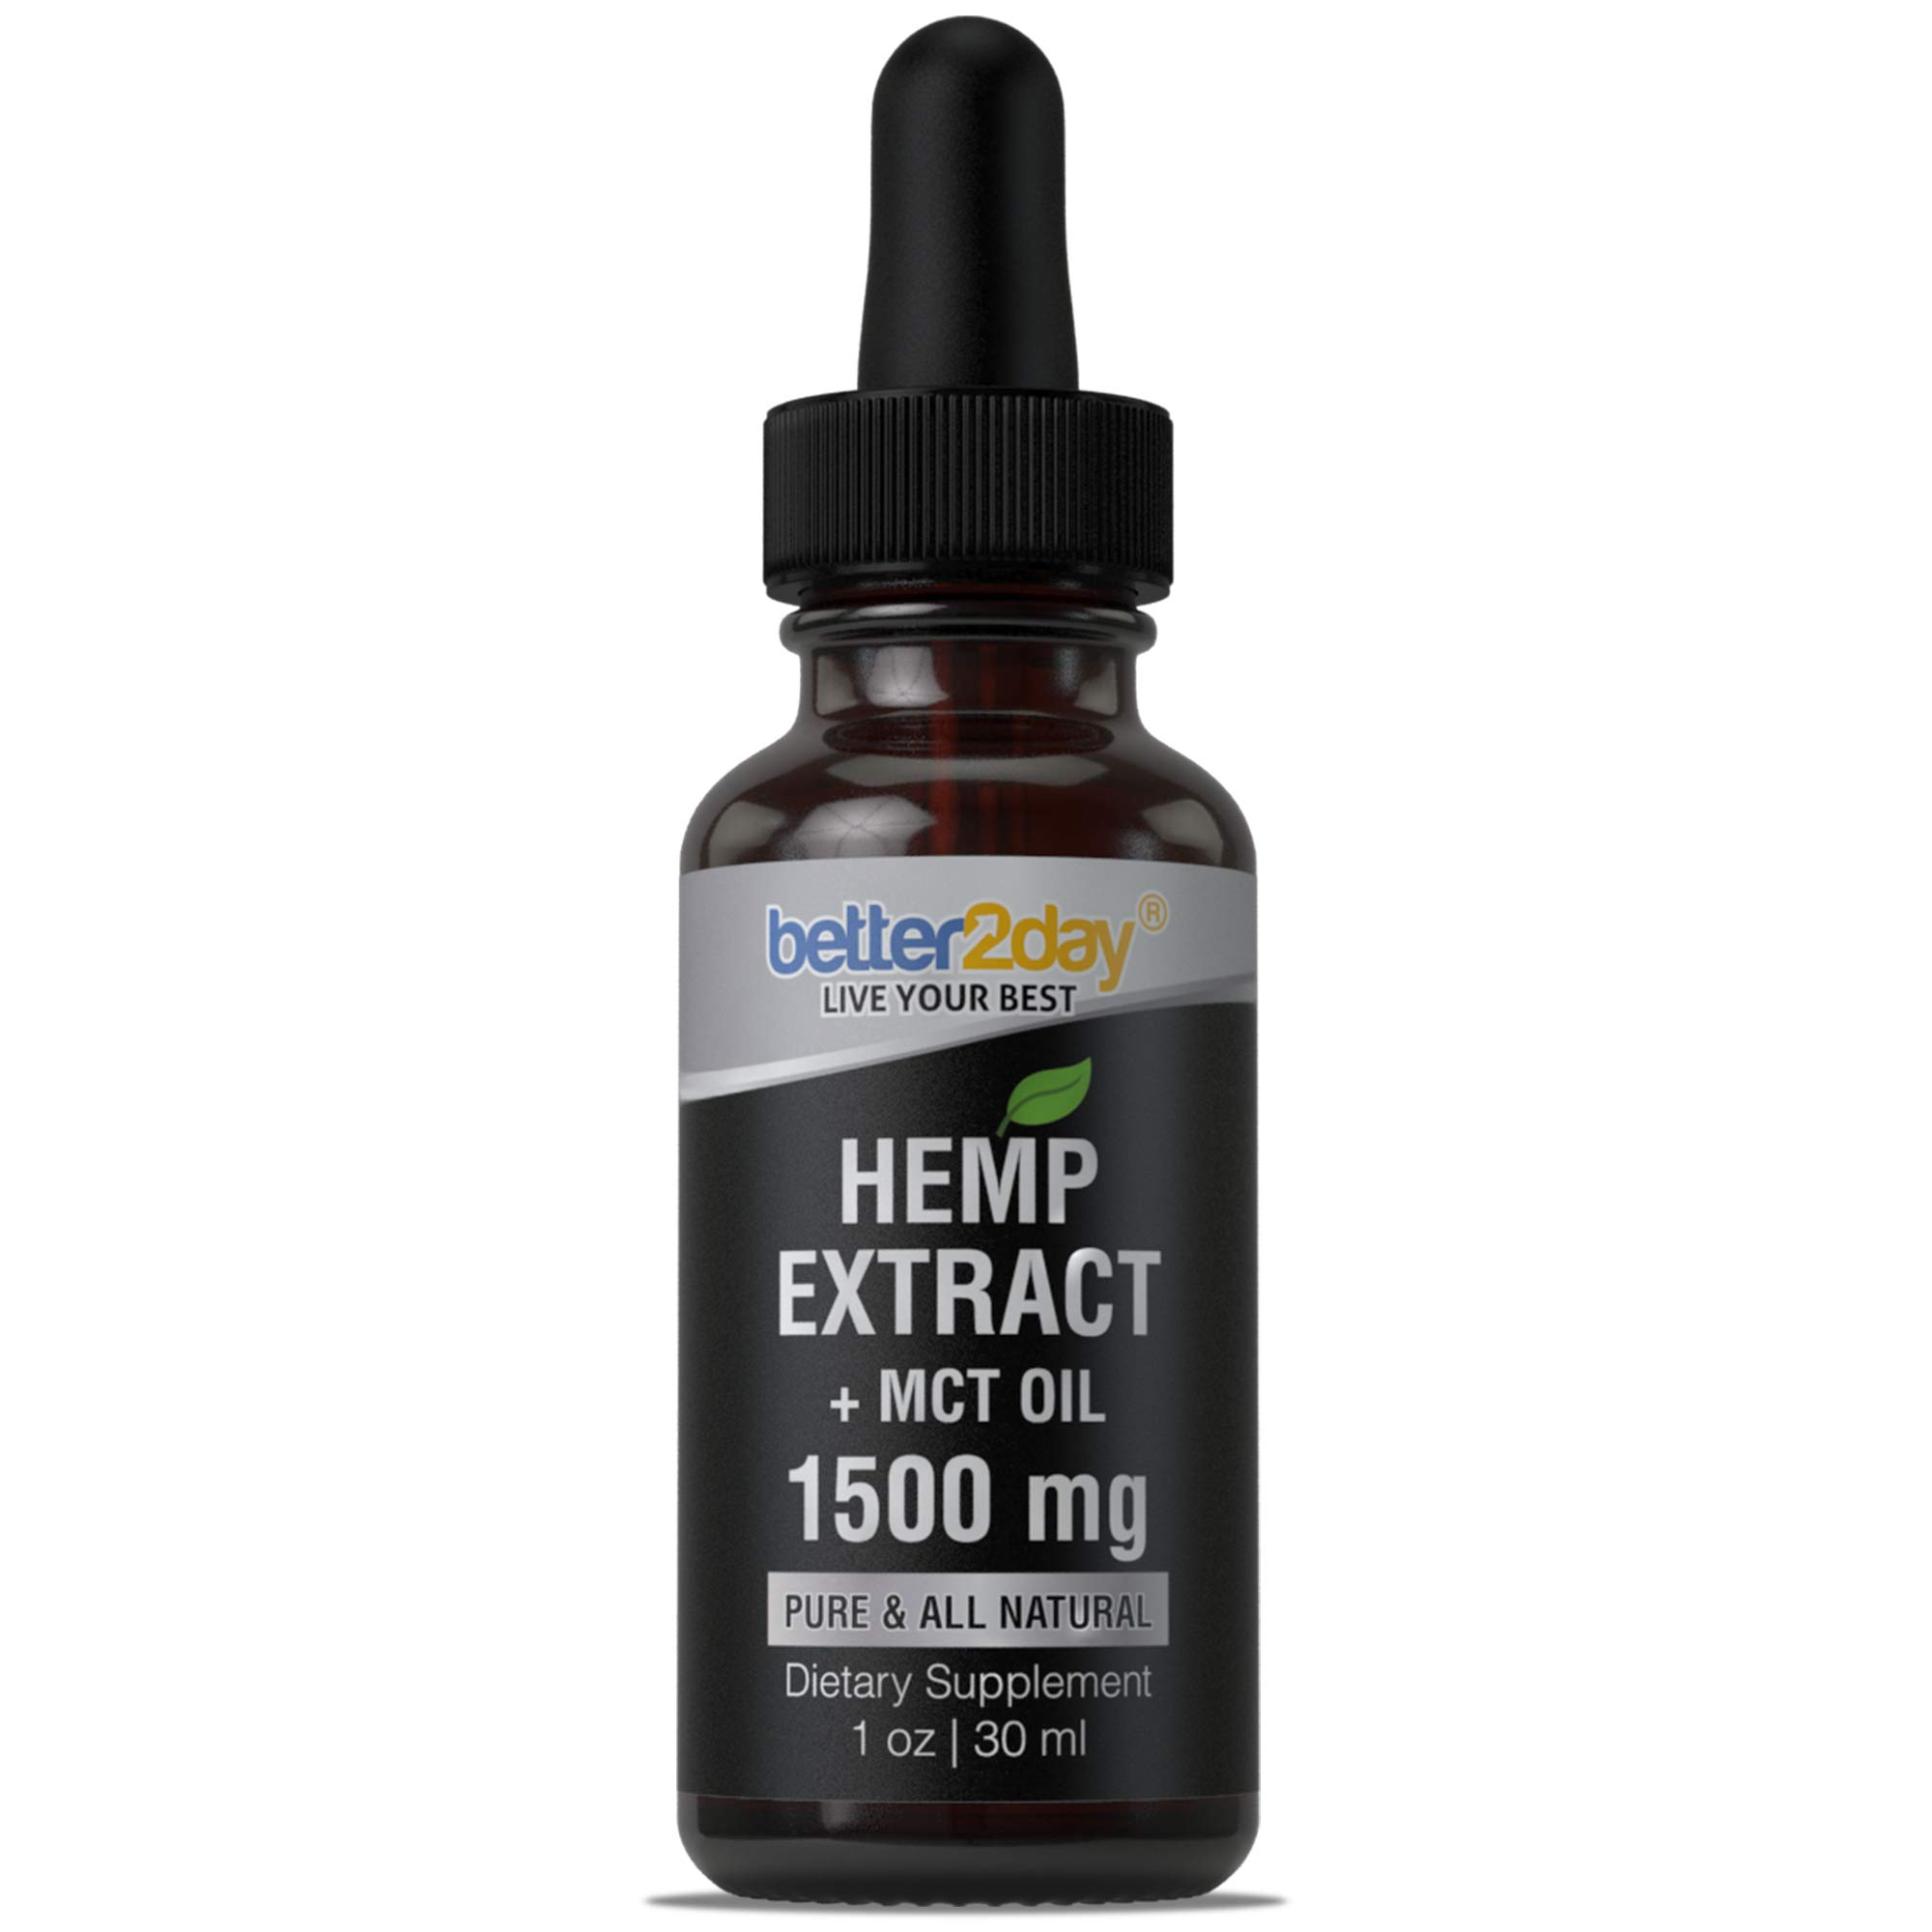 Hemp Extract + MCT Oil (1500mg) - From 100% Organic Colorado Grown Hemp Seed By Better2Day. Rich in Omega 3, 6 Fatty Acids. Natural Anti Inflammatory. Helps with Anxiety, Sleep, Mood, Skin and Hair